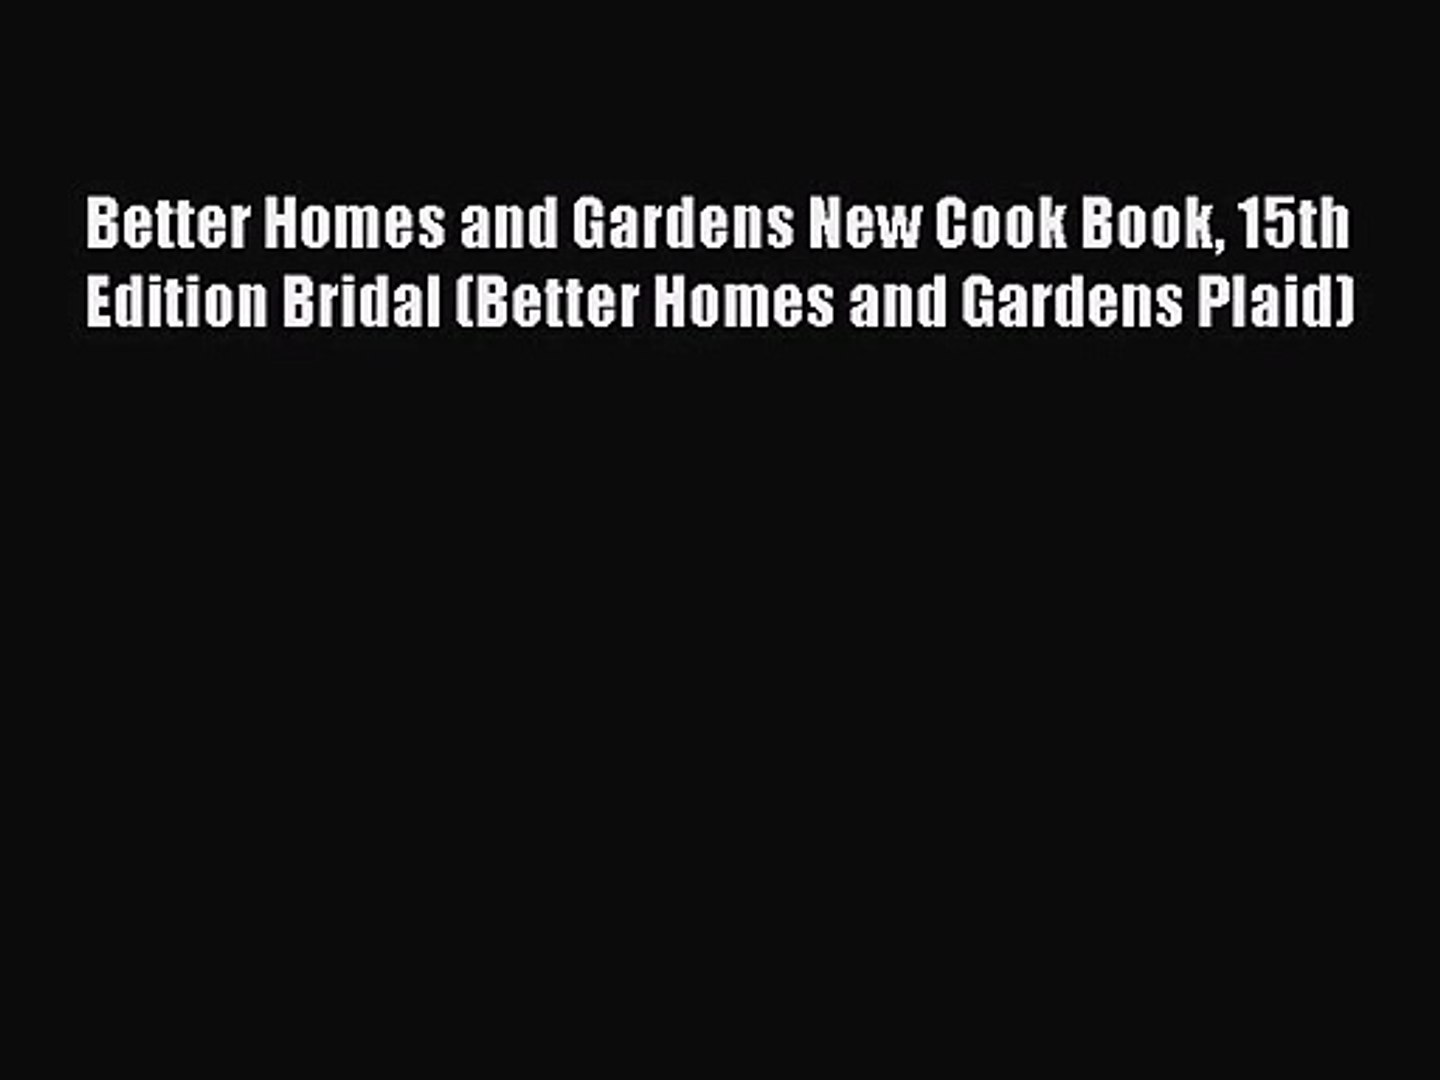 Better Homes and Gardens New Cook Book 15th Edition Bridal (Better Homes and Gardens Plaid)